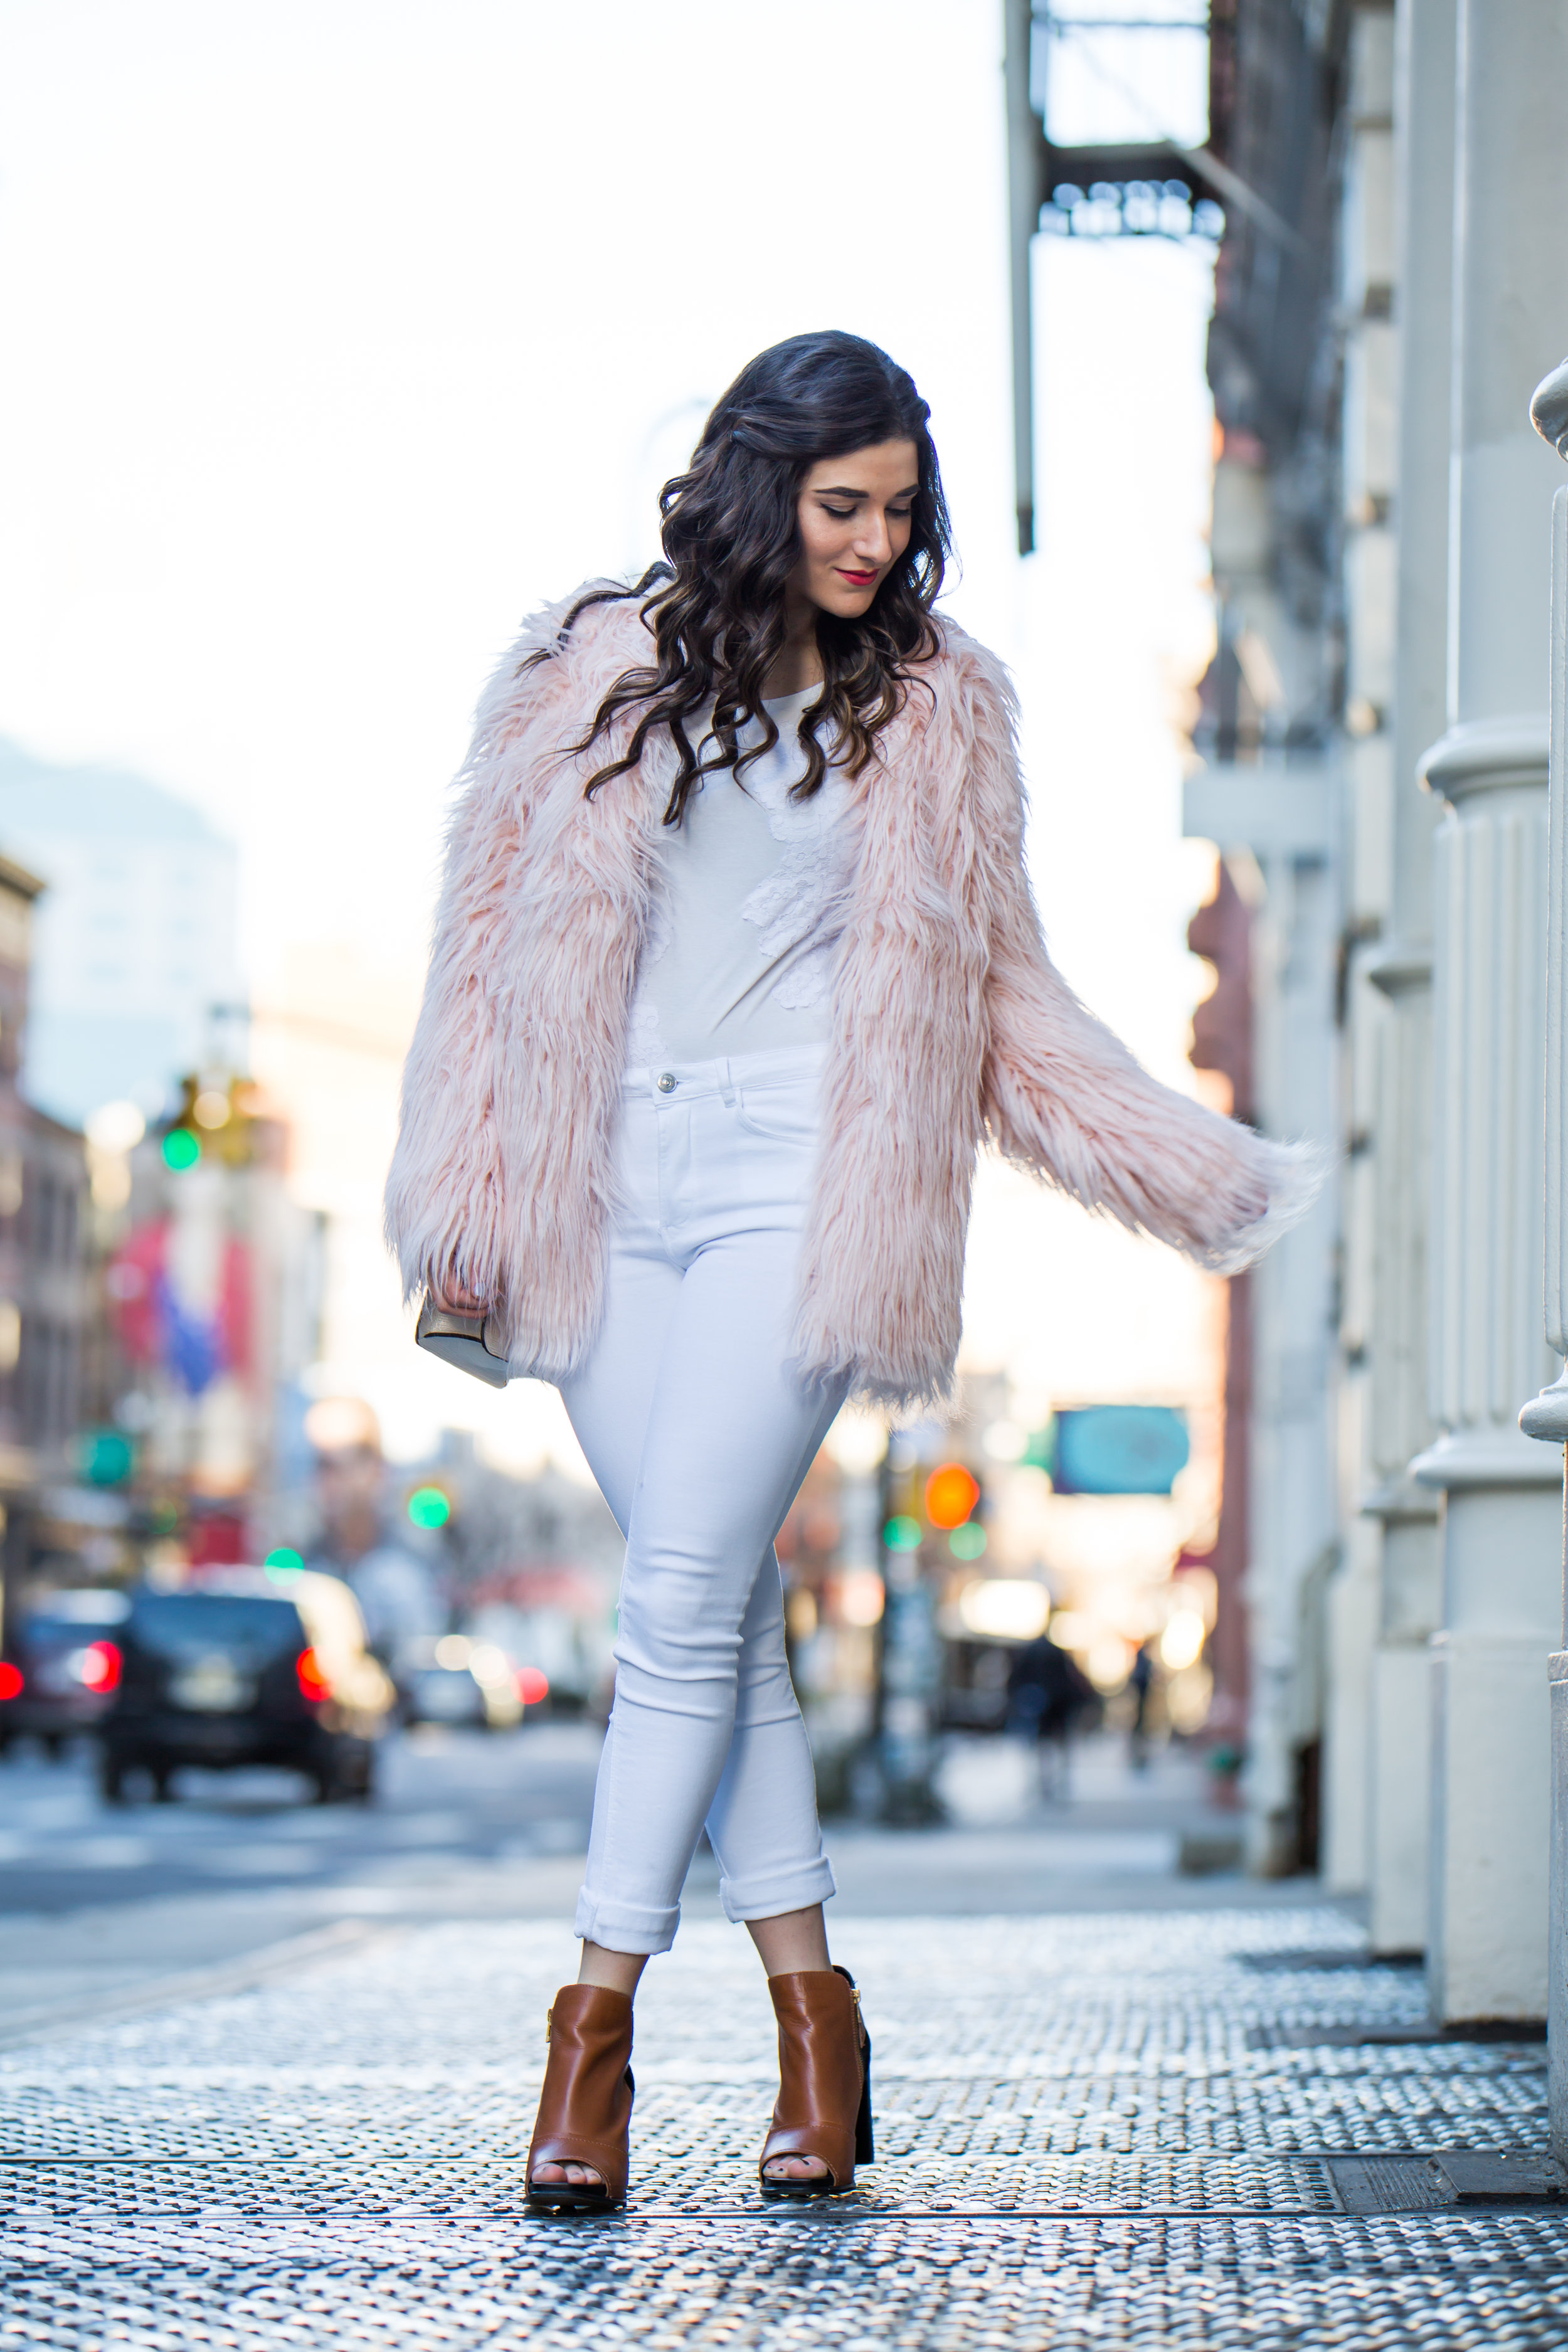 Pink Faux Fur Jacket White Jeans The Best Career Advice Esther Santer Fashion Blog NYC Street Style Blogger Outfit OOTD Trendy Winter Whites Henri Bendel Bag Tan Booties Girl Women Shop Sale Hair Shoes What To Wear Wearing Model Photoshoot Accessories.jpg